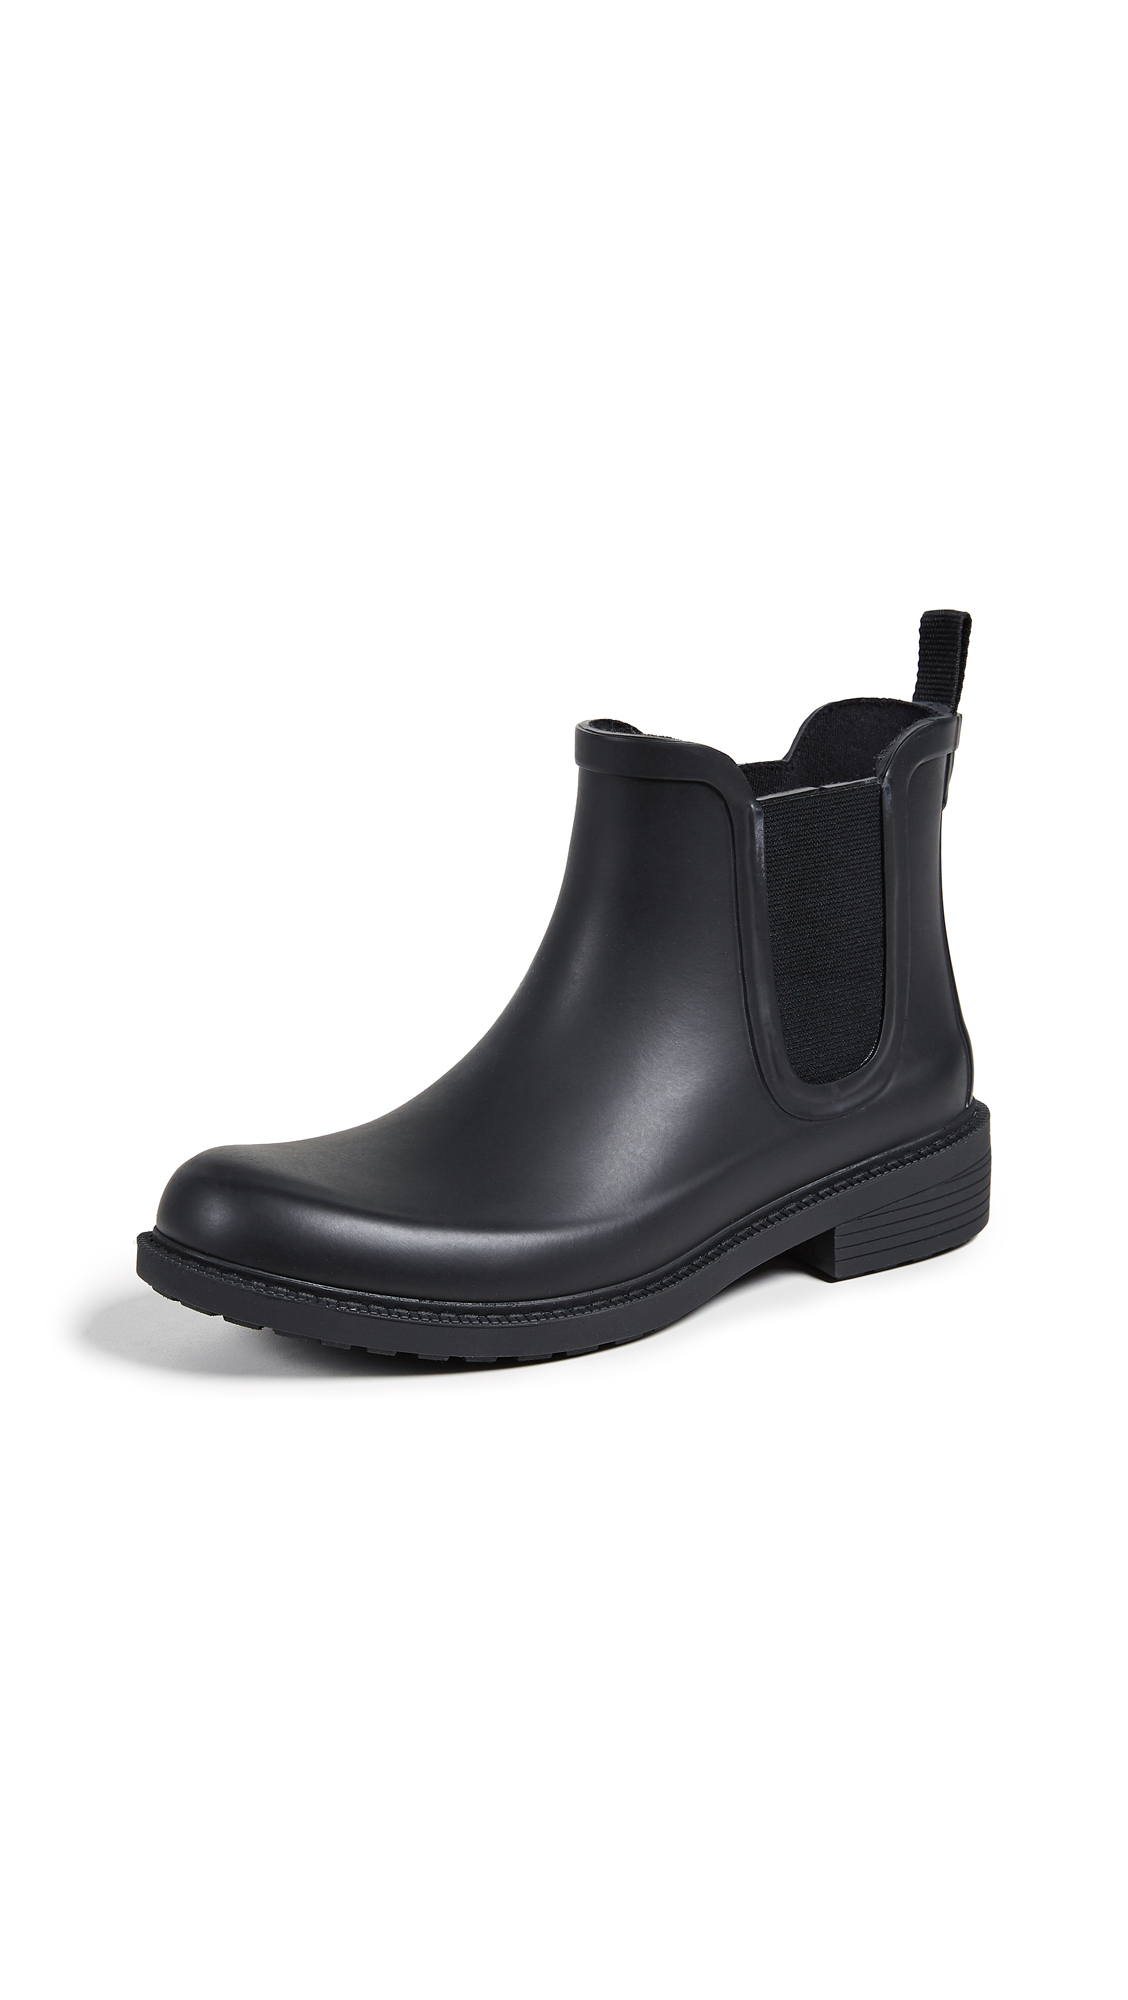 Madewell The Chelsea Rain Booties - True Black